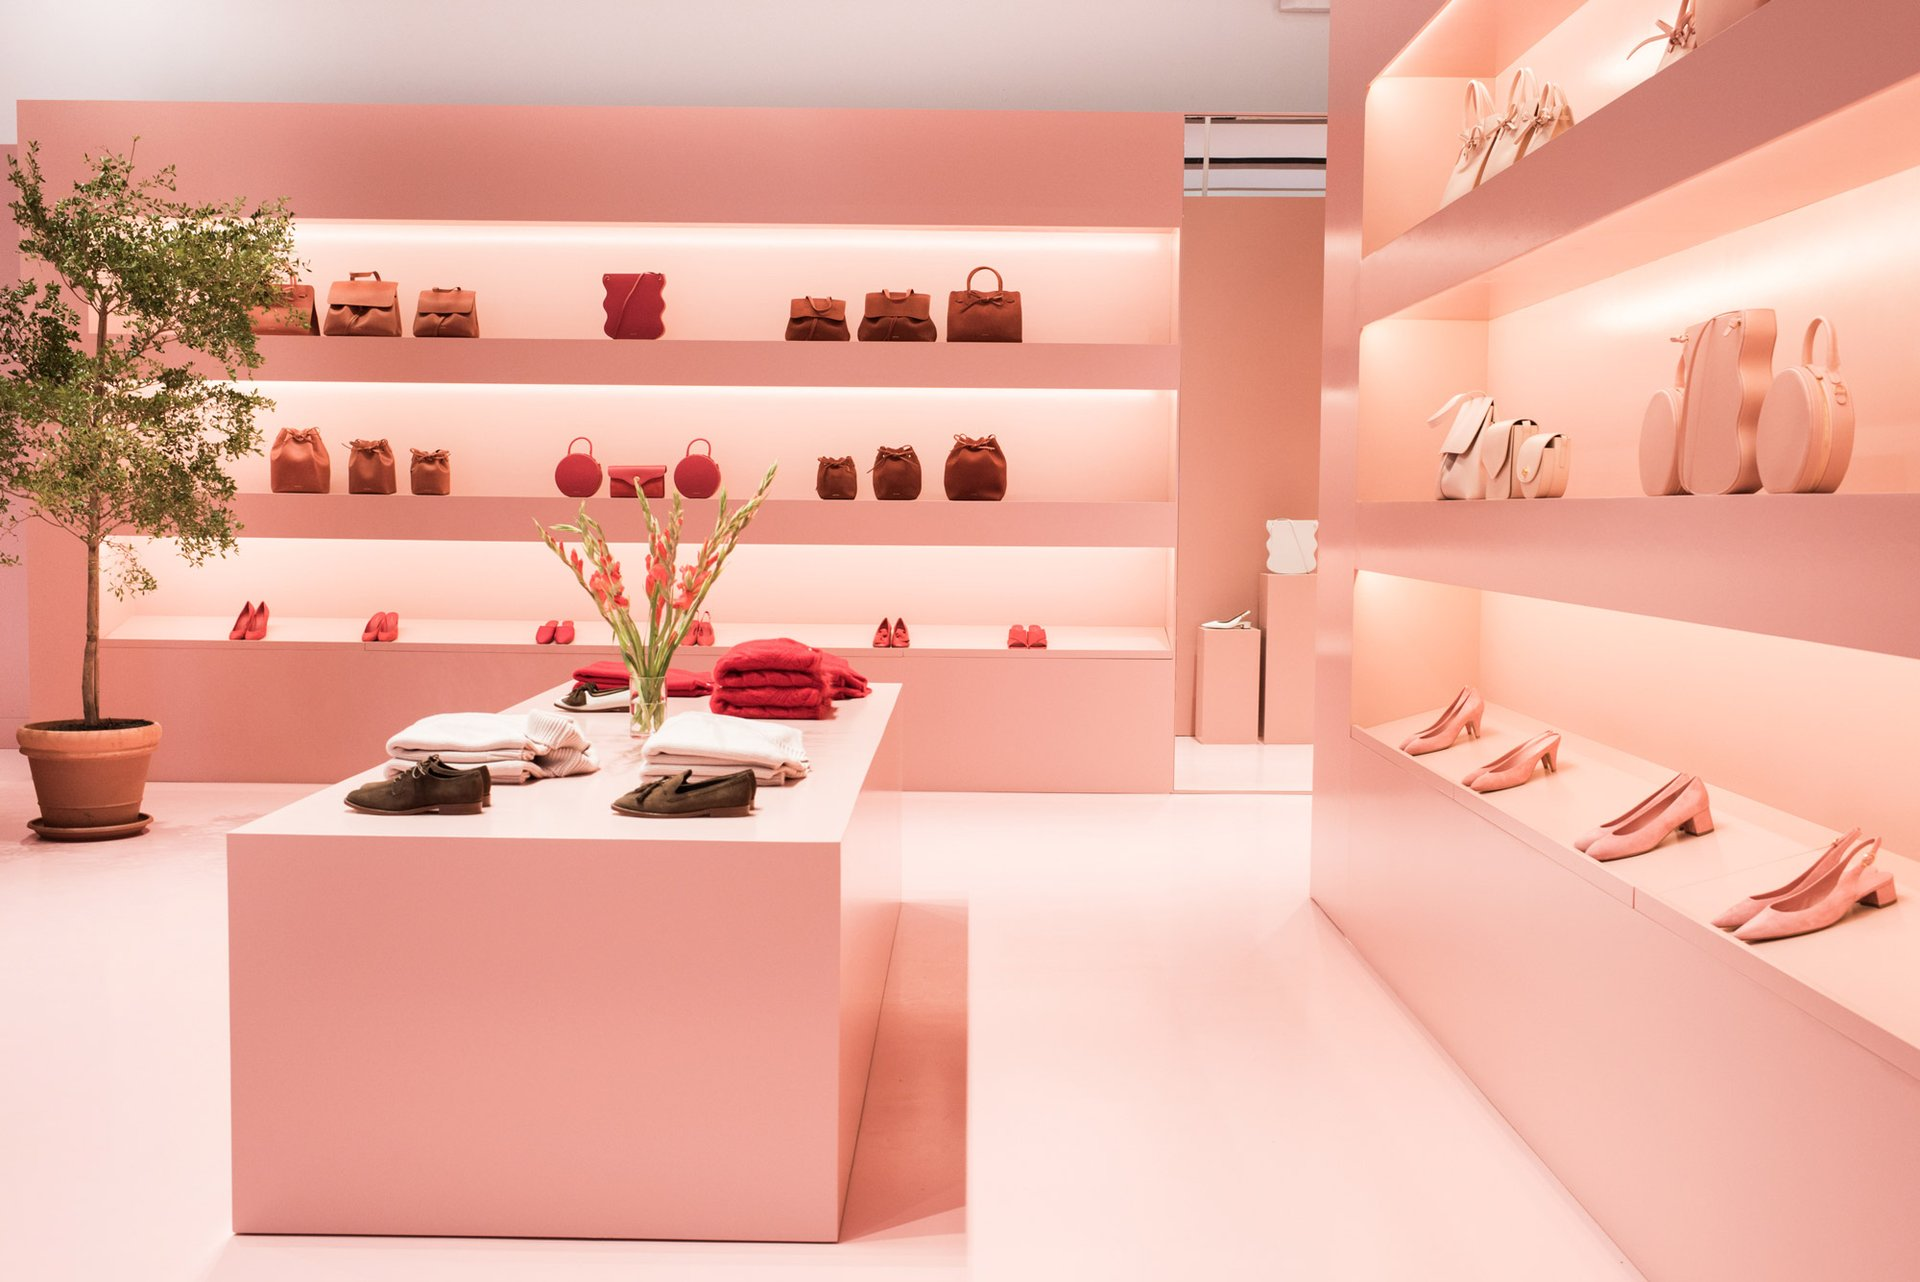 mansur gavriel madison ave interior